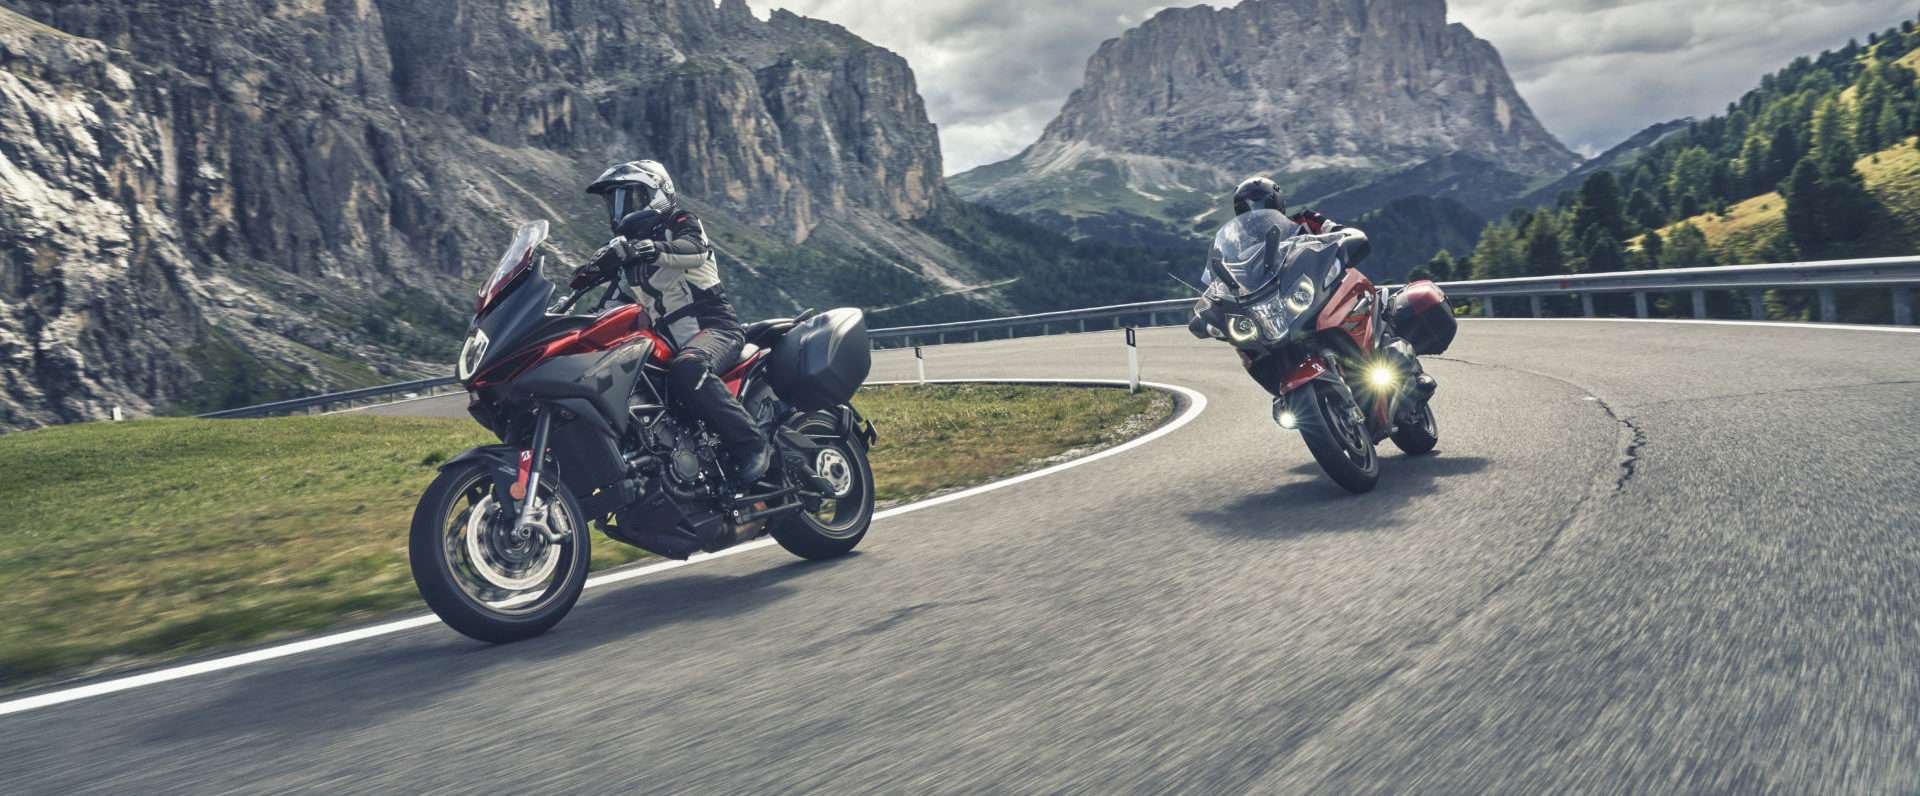 Motorcycles fitted with Bridgestone's new Battlax T32 tires in action. Photo courtesy Bridgestone.